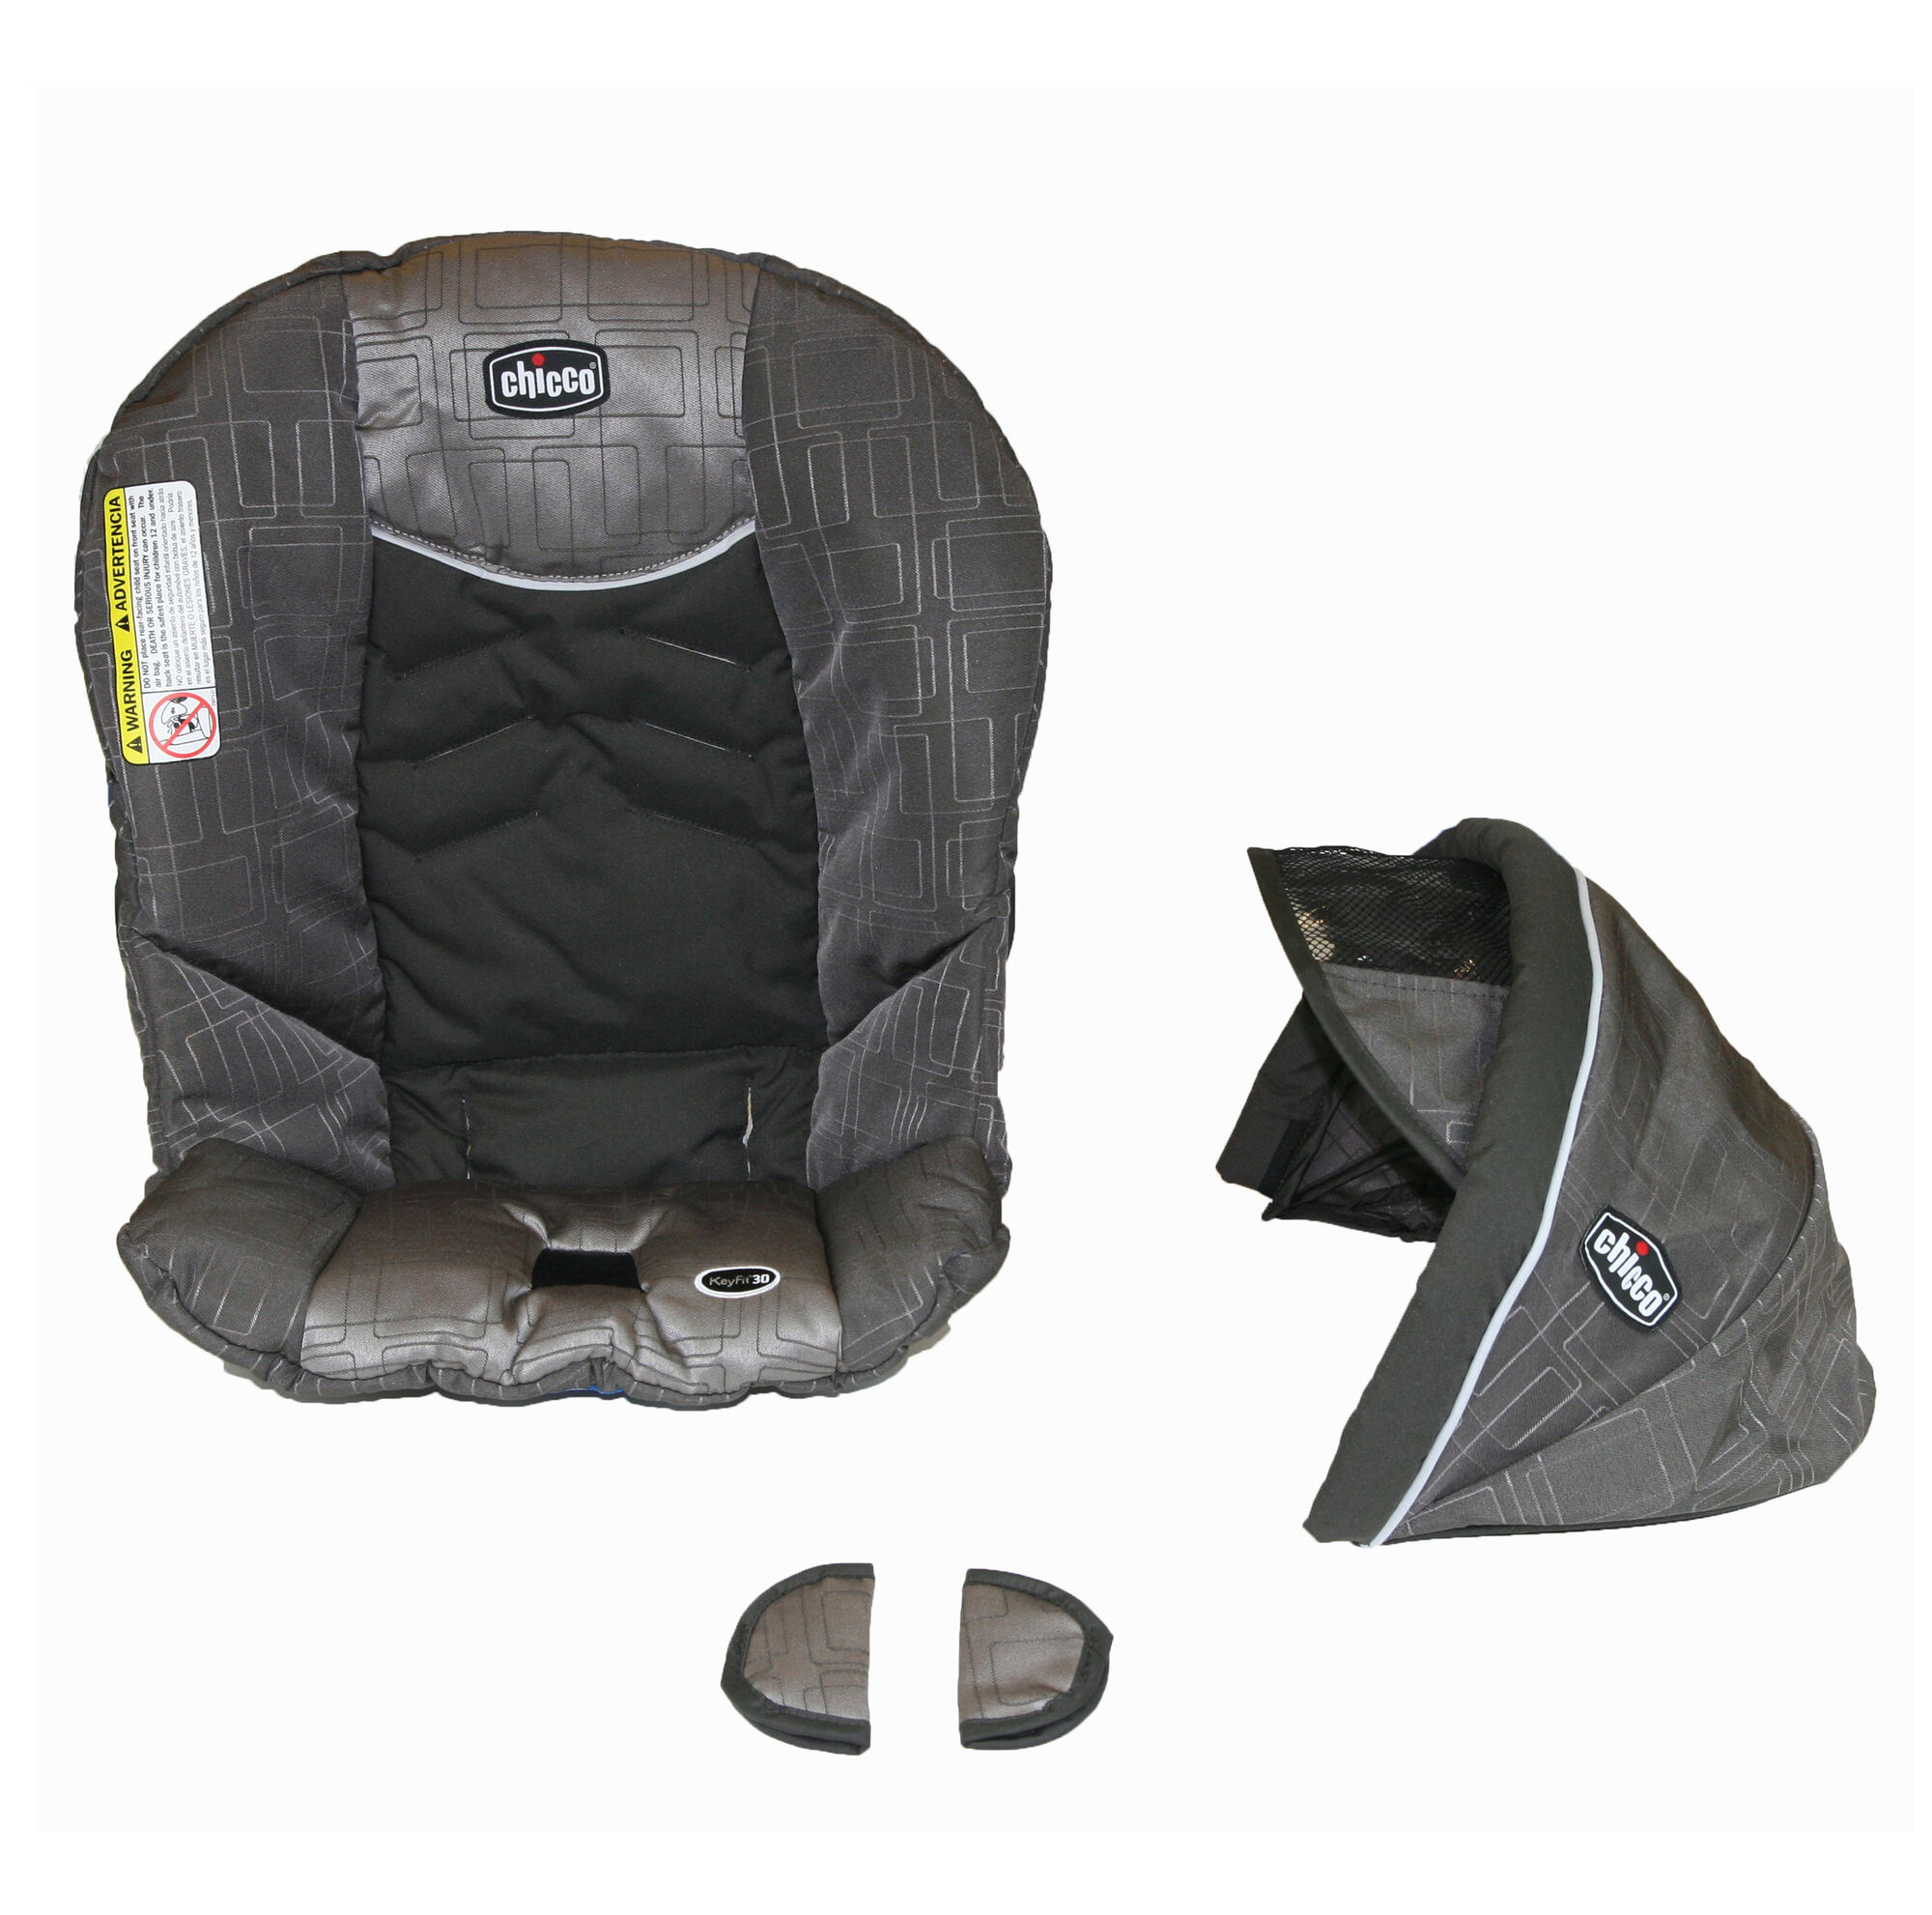 Chicco KeyFit 30 Seat Cover Canopy and Pads